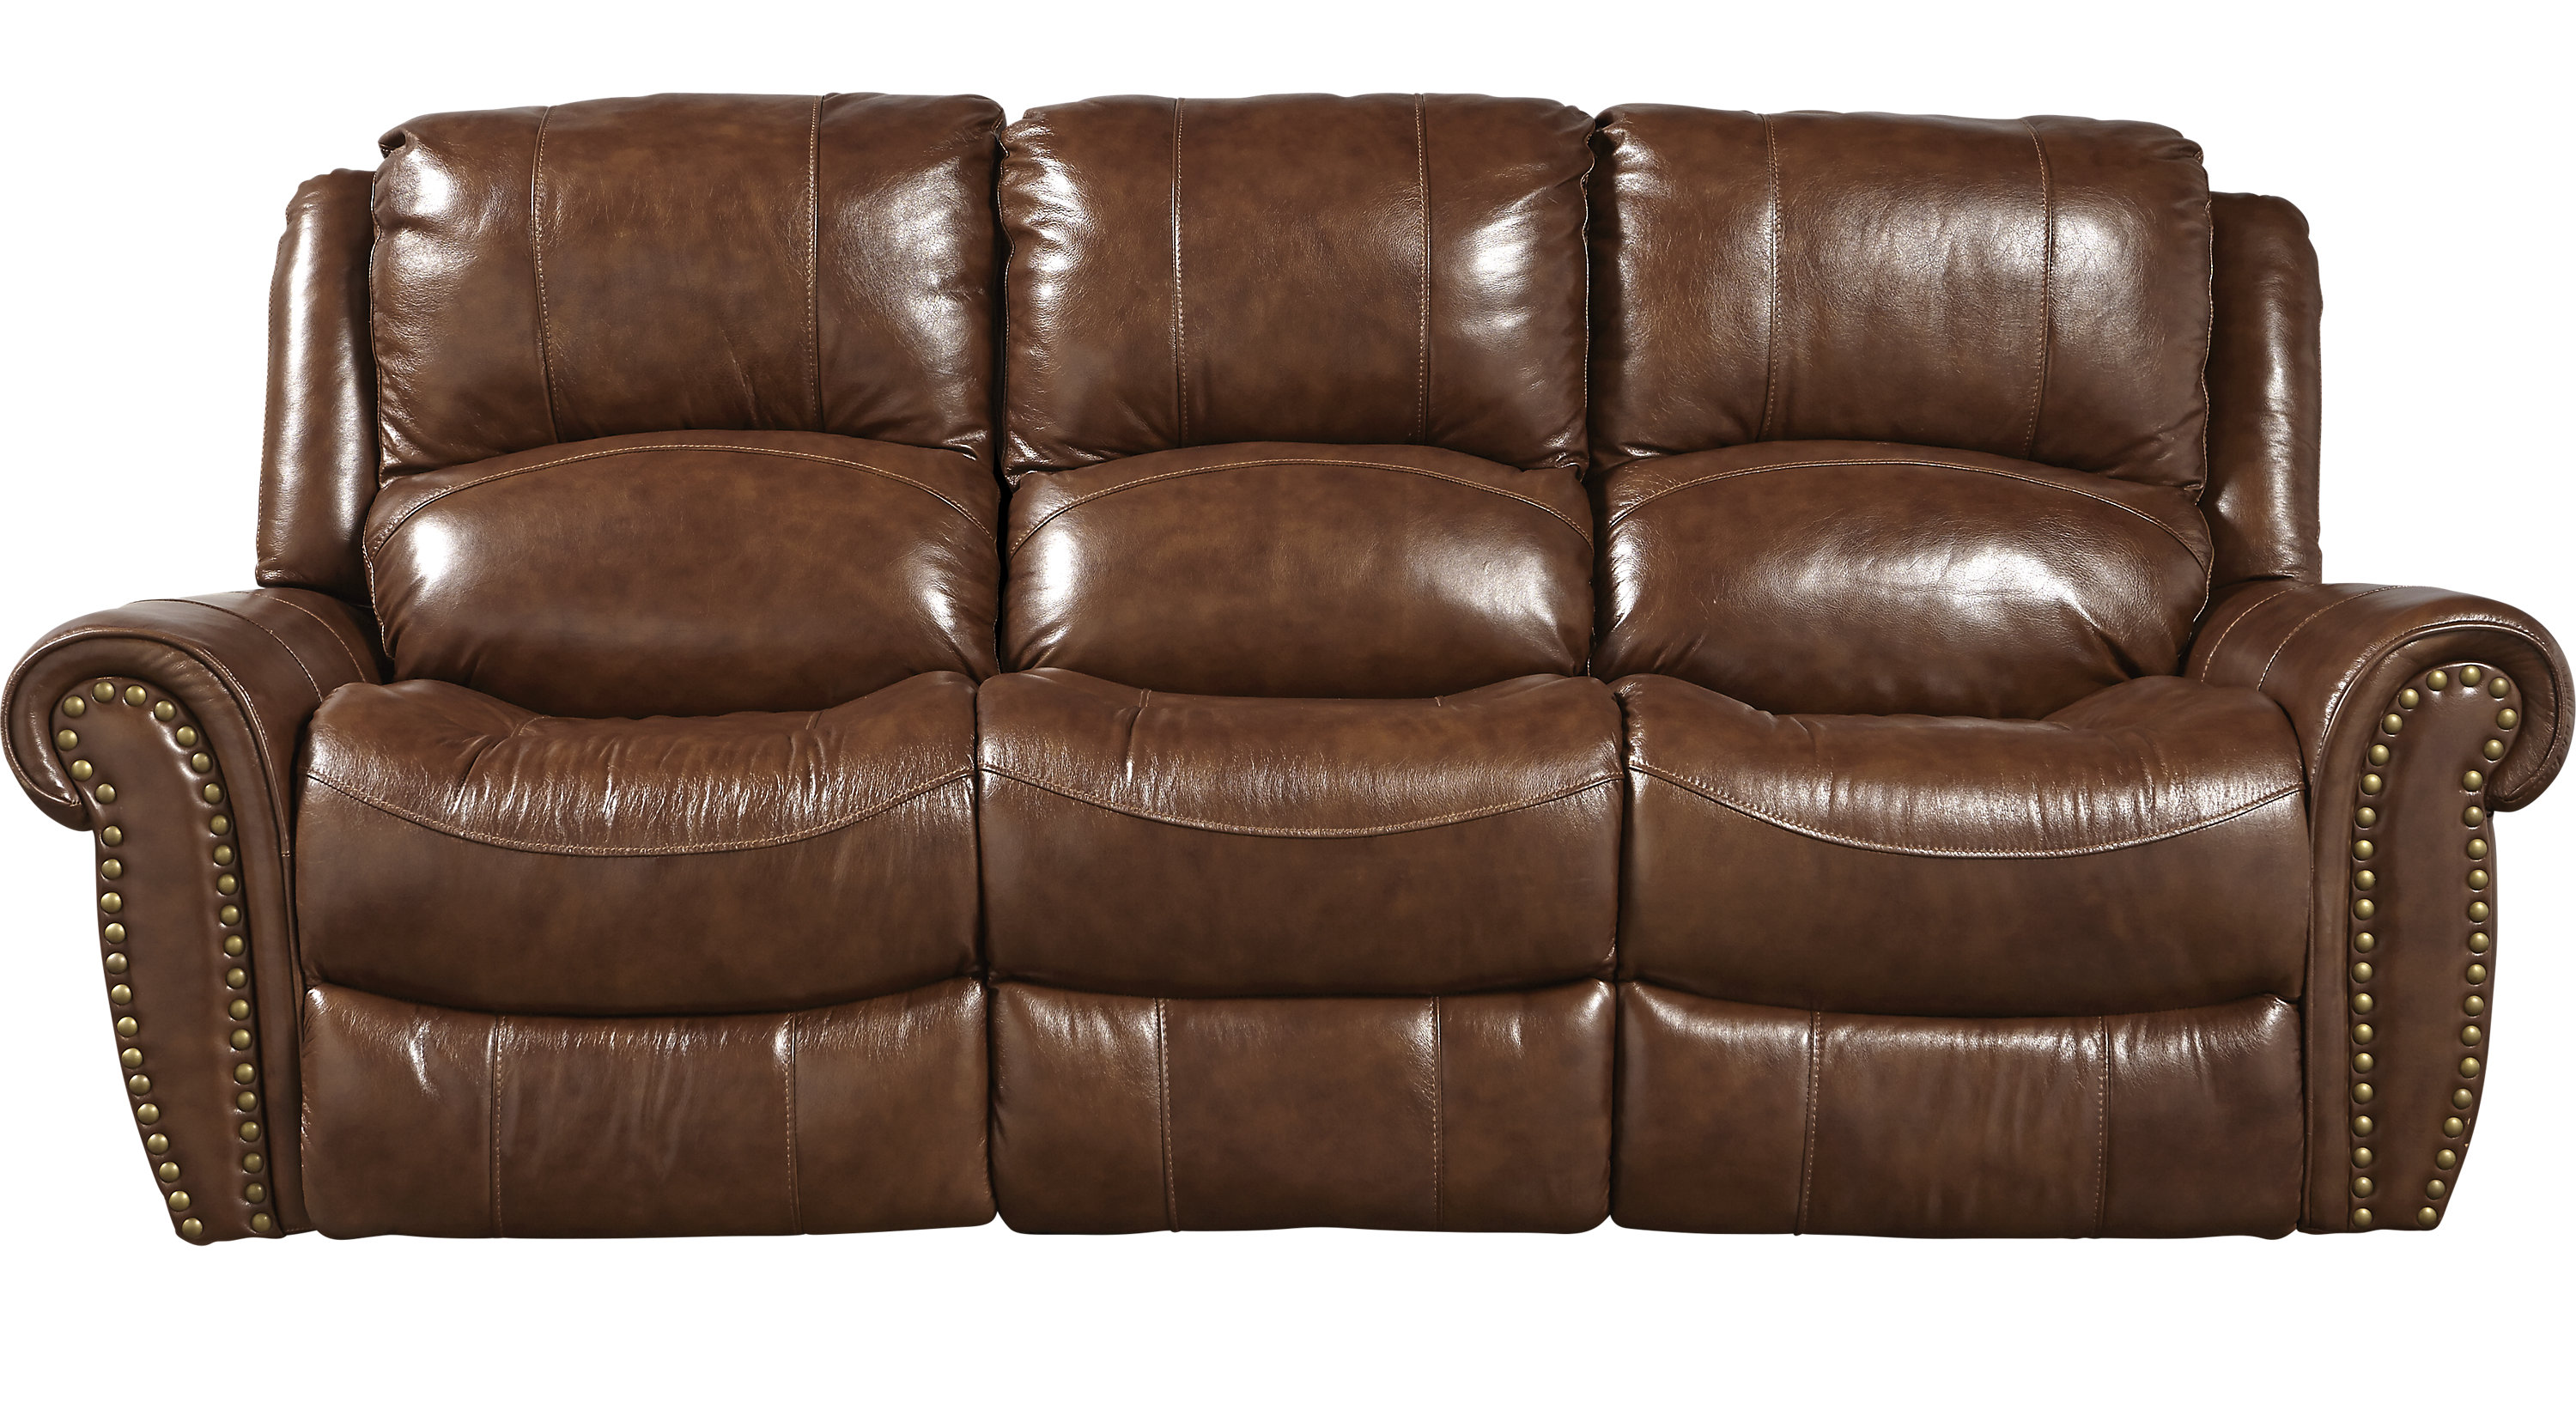 1 199 99 Abruzzo Brown Leather Power Reclining Sofa Traditional  ~ Baycliffe Reclining Sofa Reviews